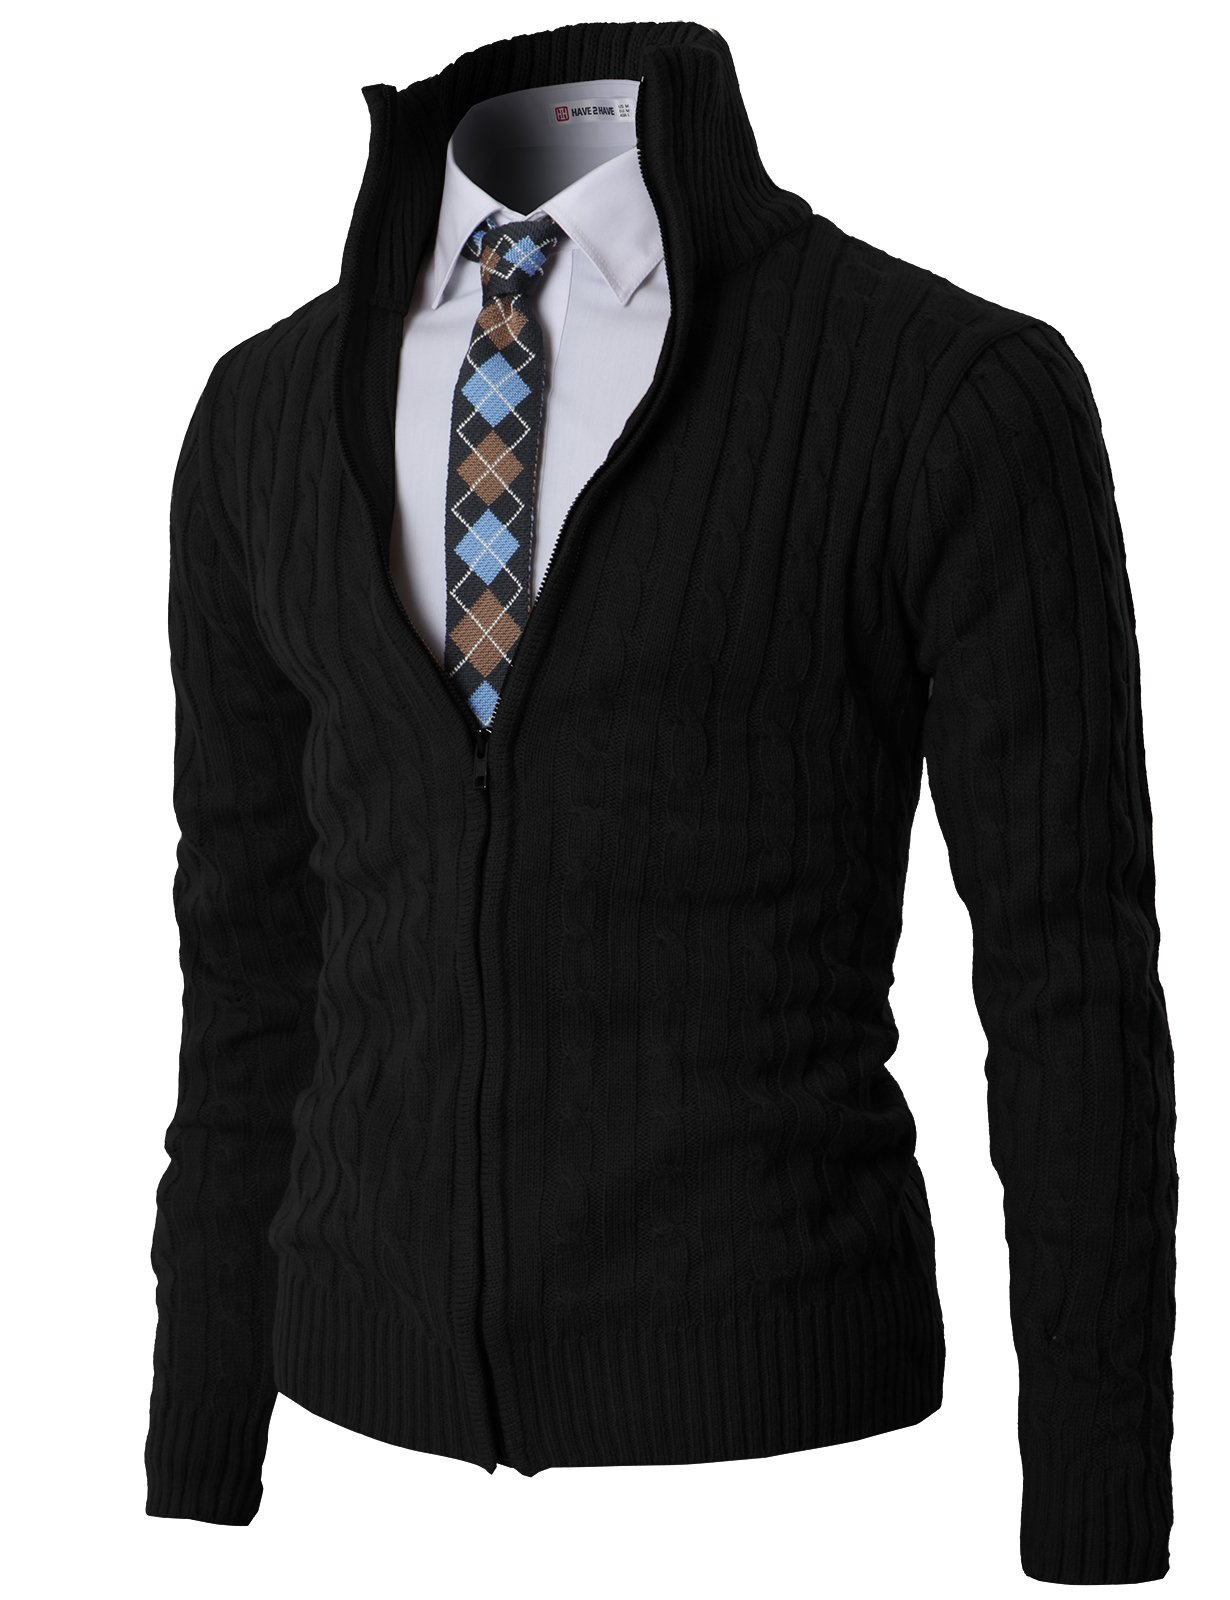 H2H Mens Casual Knited Cardigan Zip up with Twisted Pattern Black US M/Asia M (KMOCAL017)